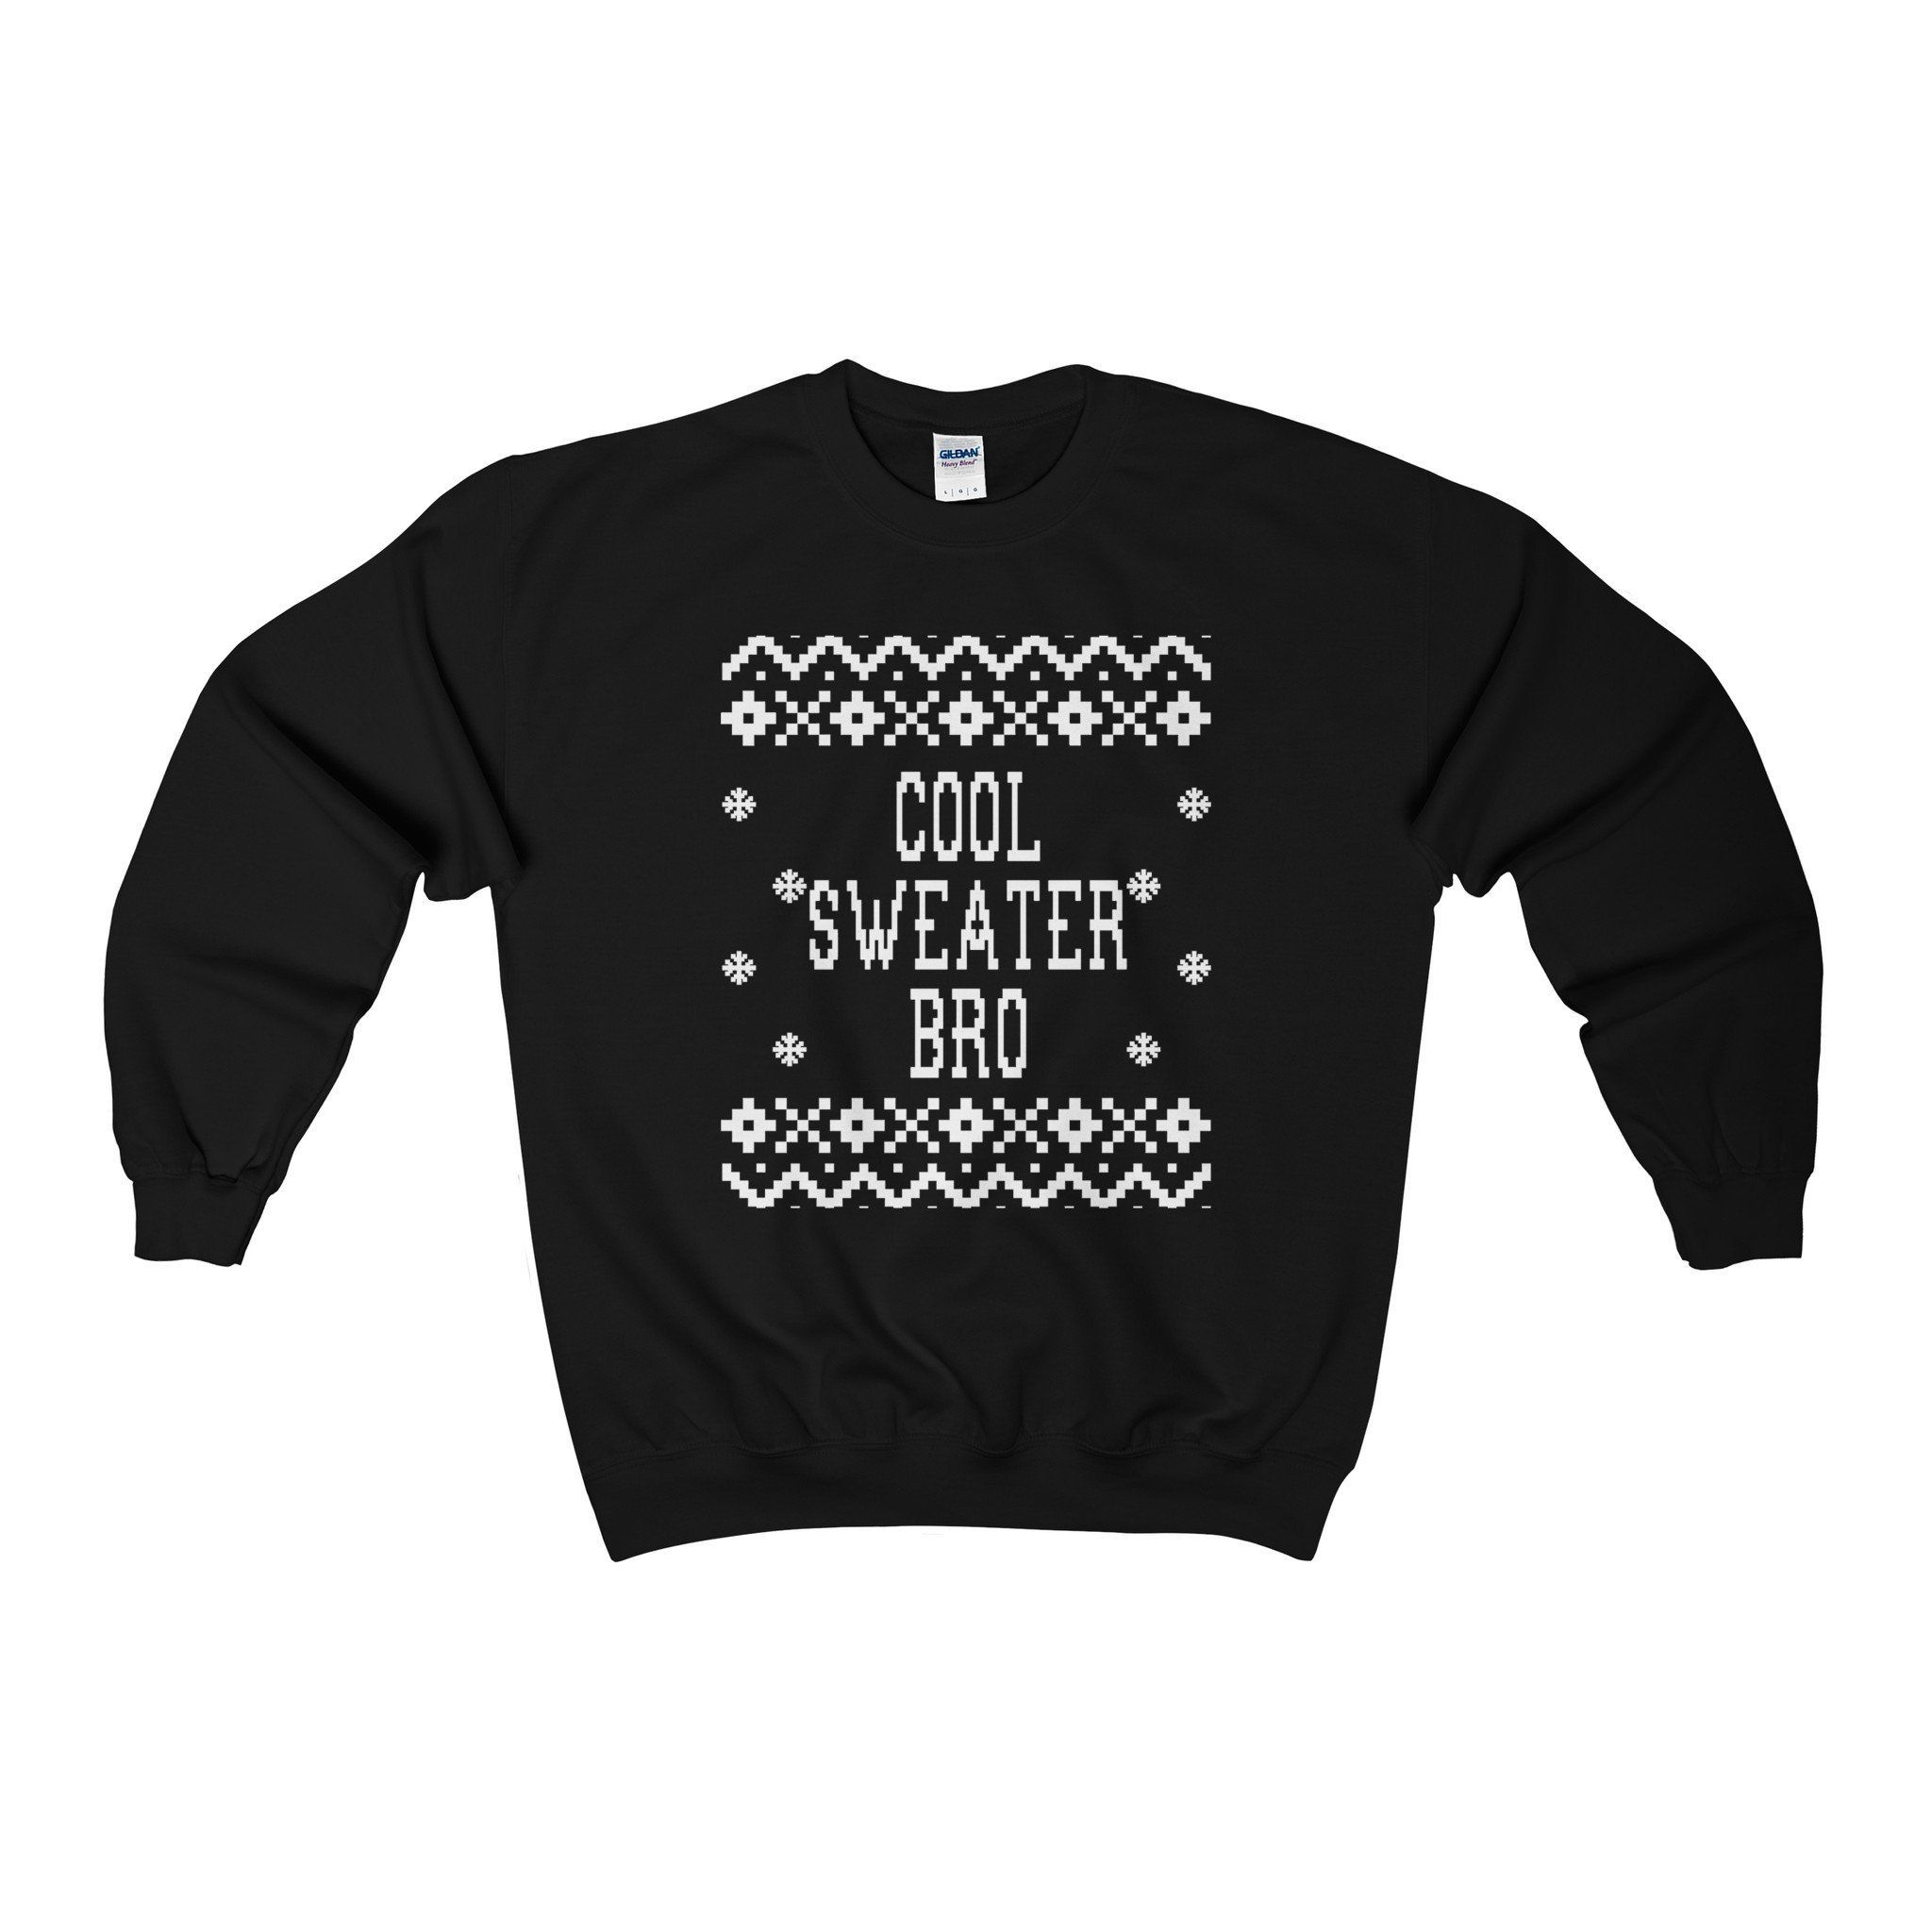 3847b20b Ugly Christmas Sweater - Cool Sweater Bro Sweatshirt | Products ...